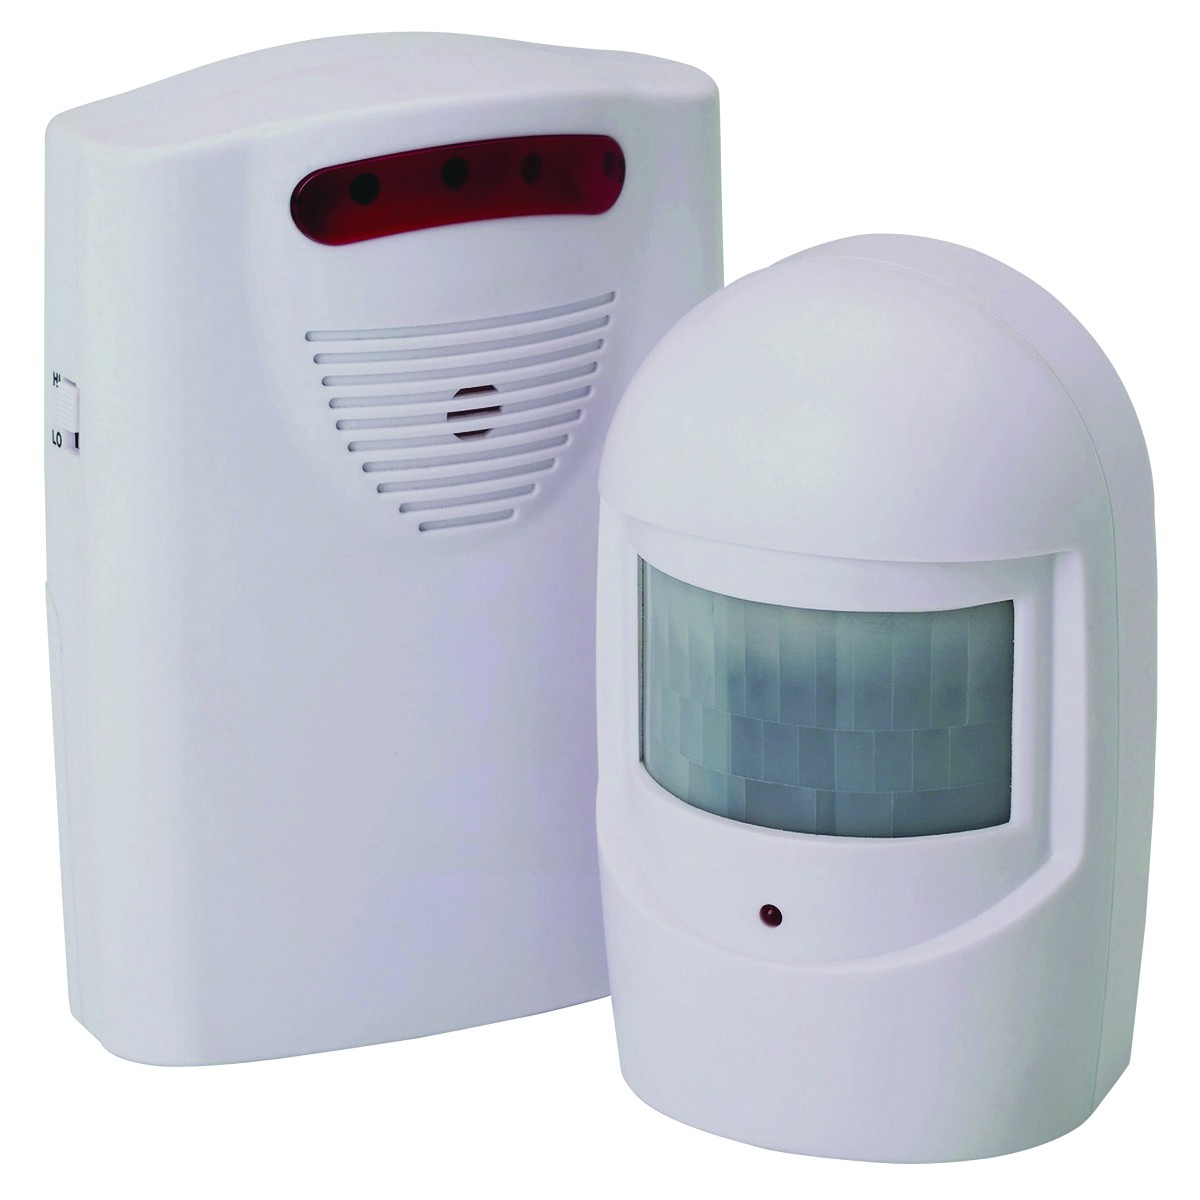 Home security wireless alarms house alarms Best diy monitored alarm system